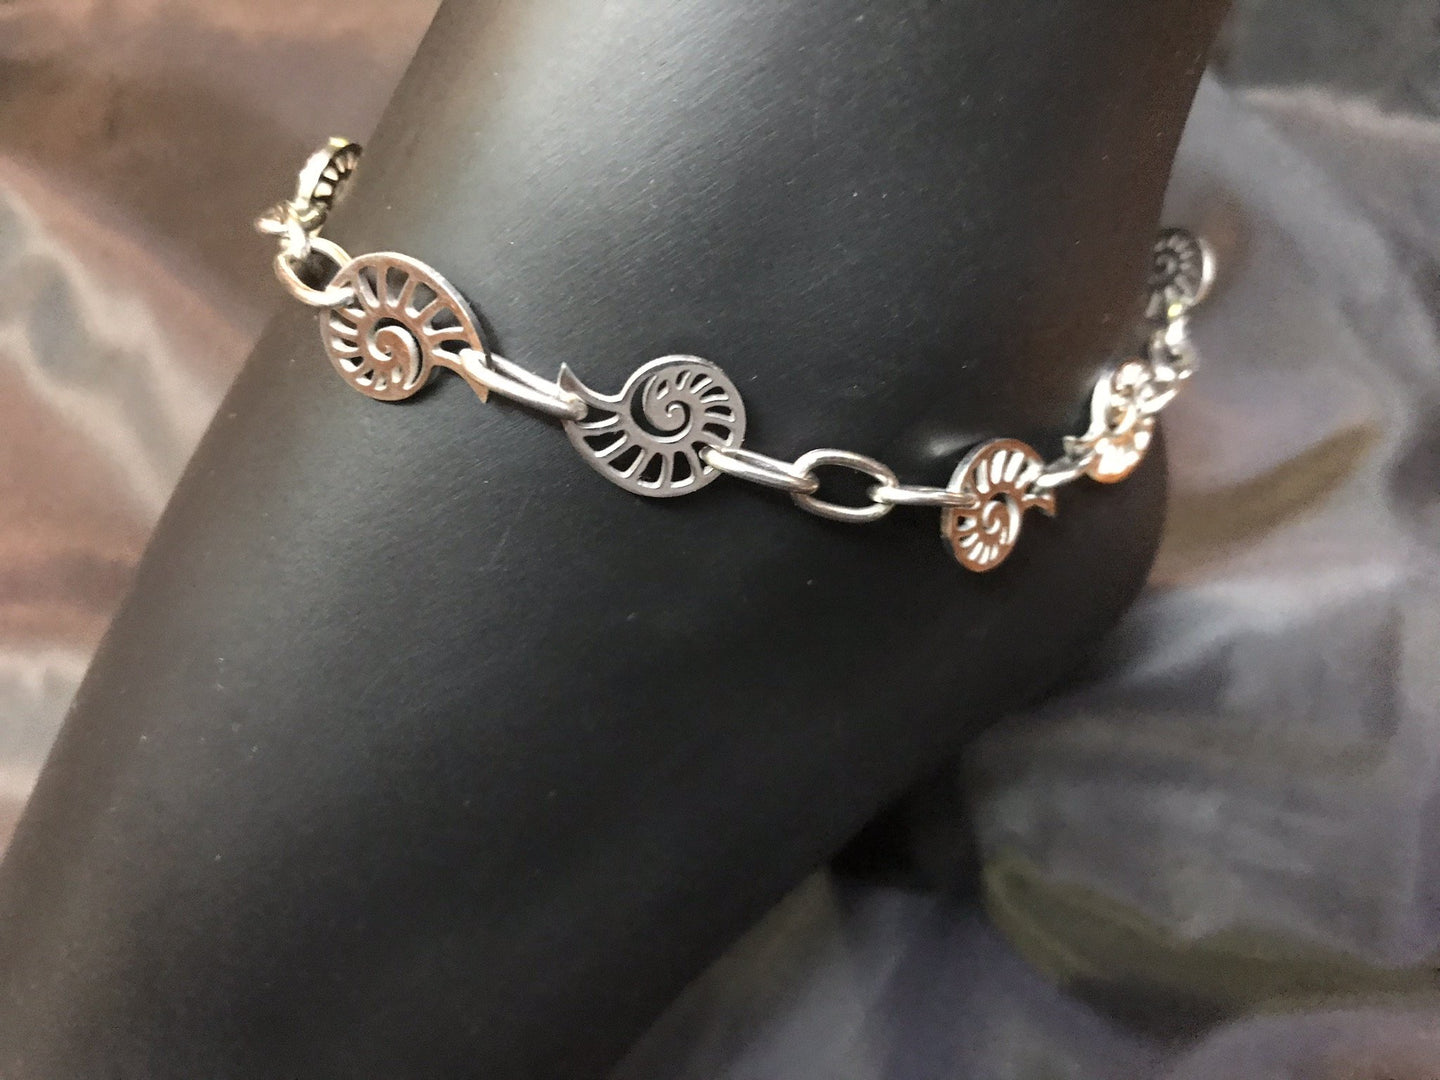 Delicate stainless steel nautilus charms form links in the chain in this rust-resistant anklet that can stay with you throughout all your adventures.